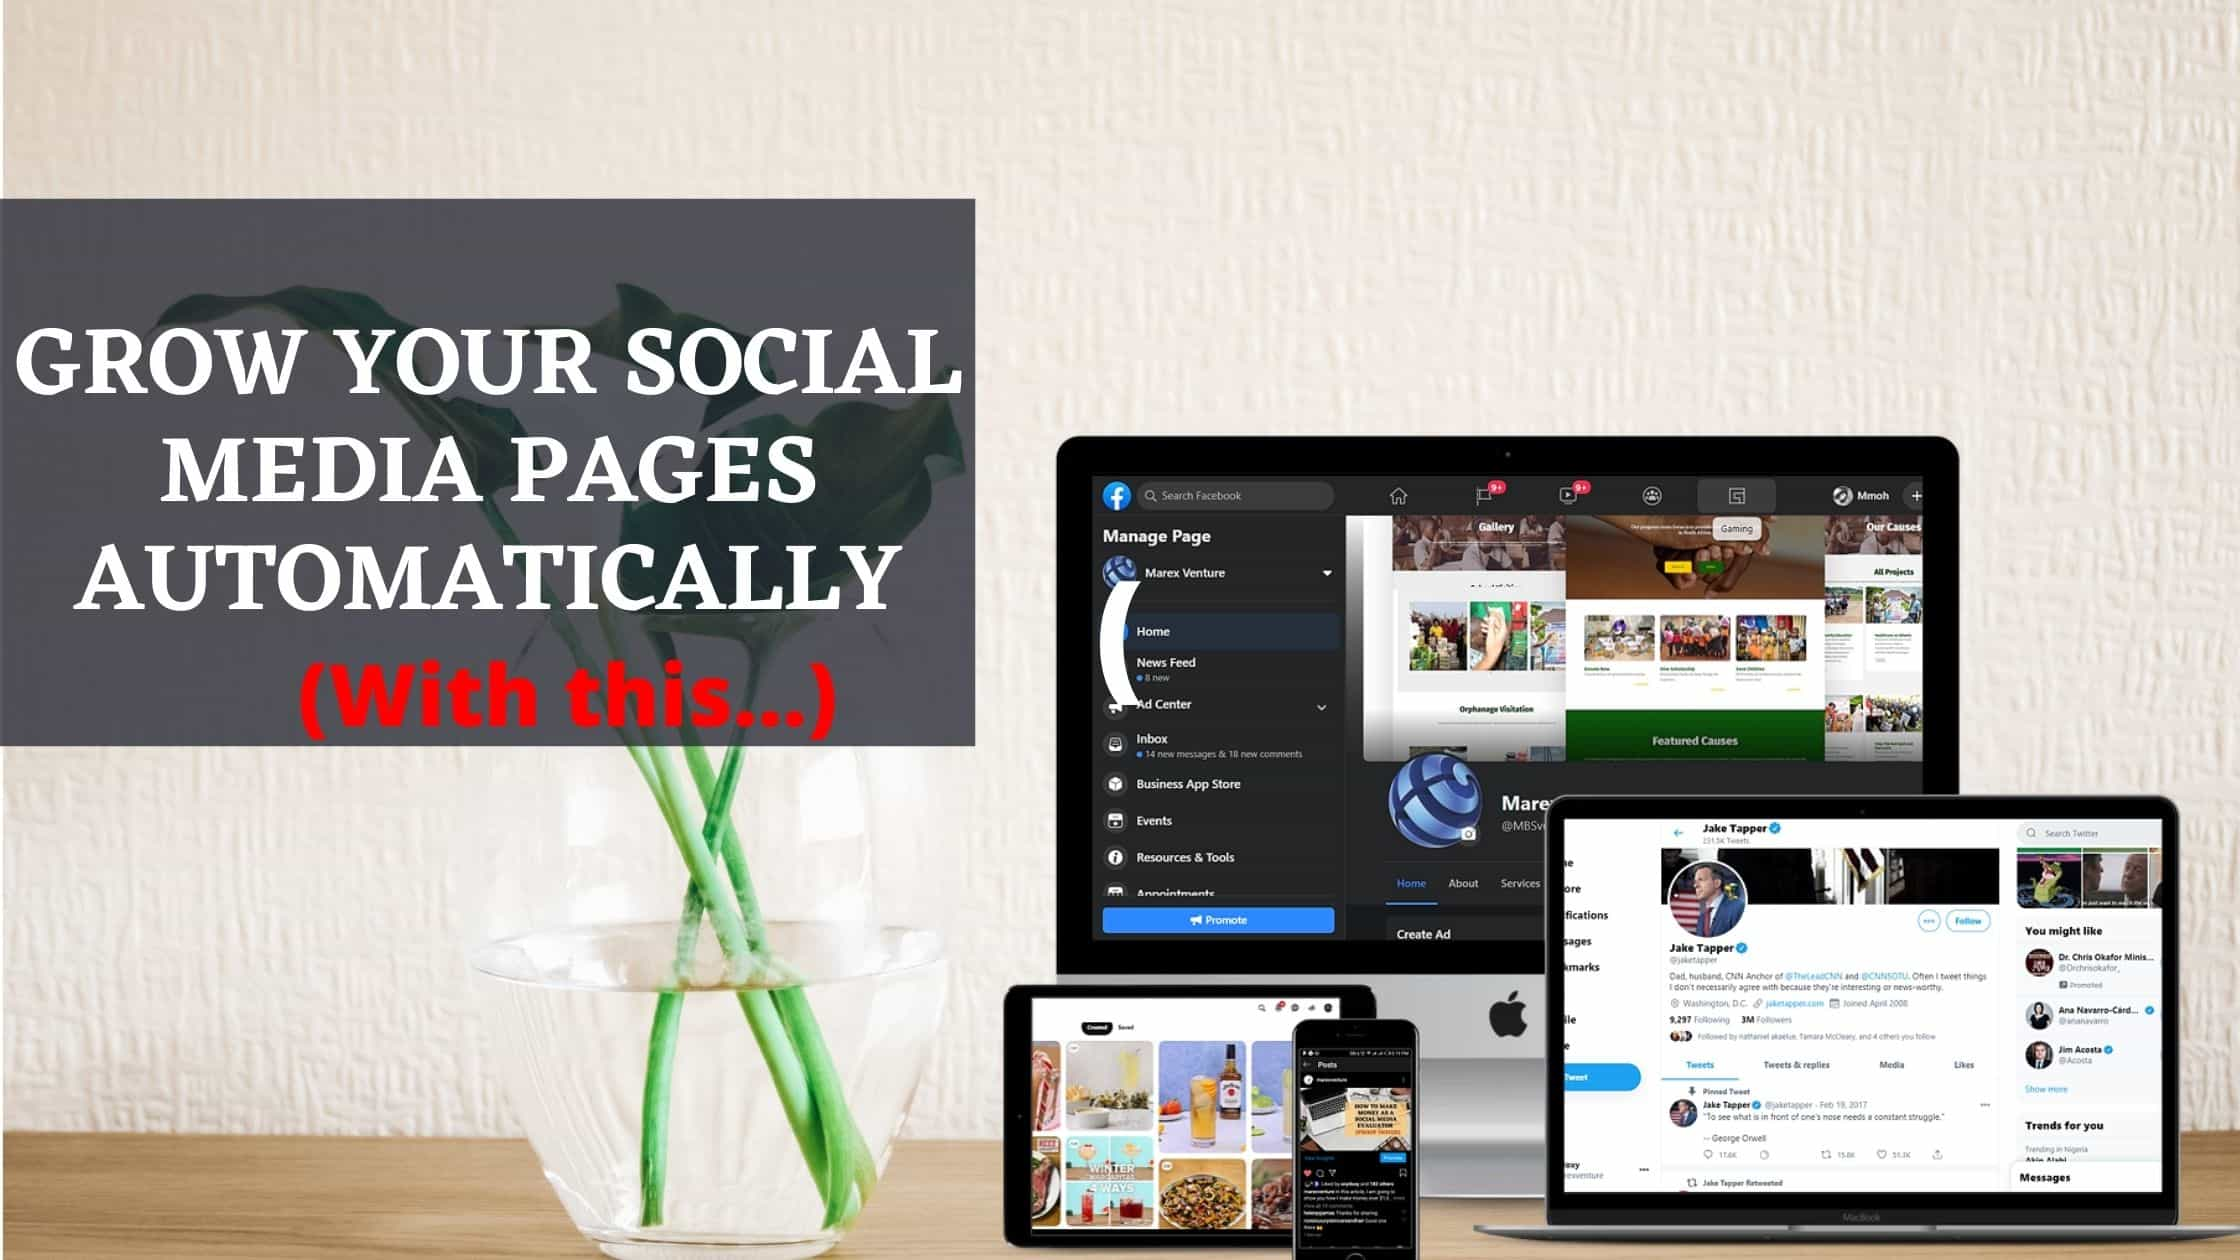 Best way to grow your Social Media automatically